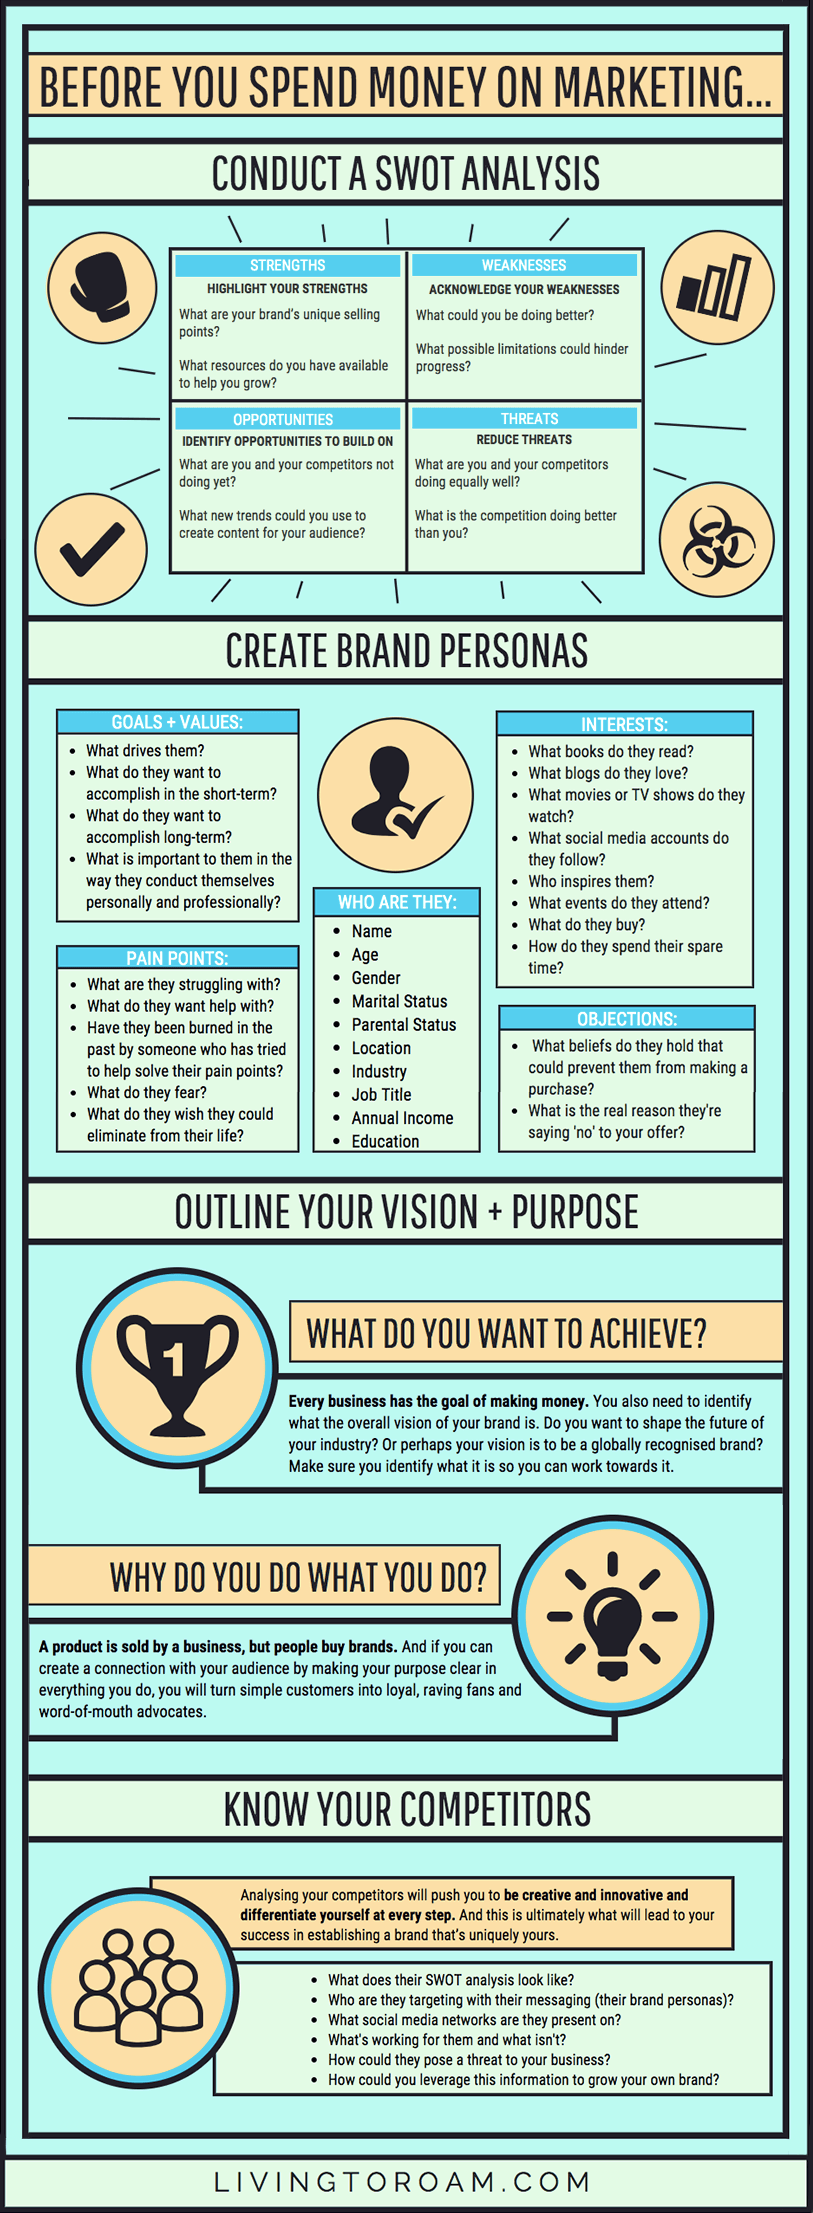 Infographic: How to Create a Powerful Marketing Strategy Plan. Before you spend money on marketing, here are a few things to consider first. This infographic will teach you how to conduct a SWOT analysis, how to create brand personas, how to outline your vision and purpose, and lastly how to know your competitors. Visit livingtoroam.com for more | #infographic #marketingtips #marketingstrategy